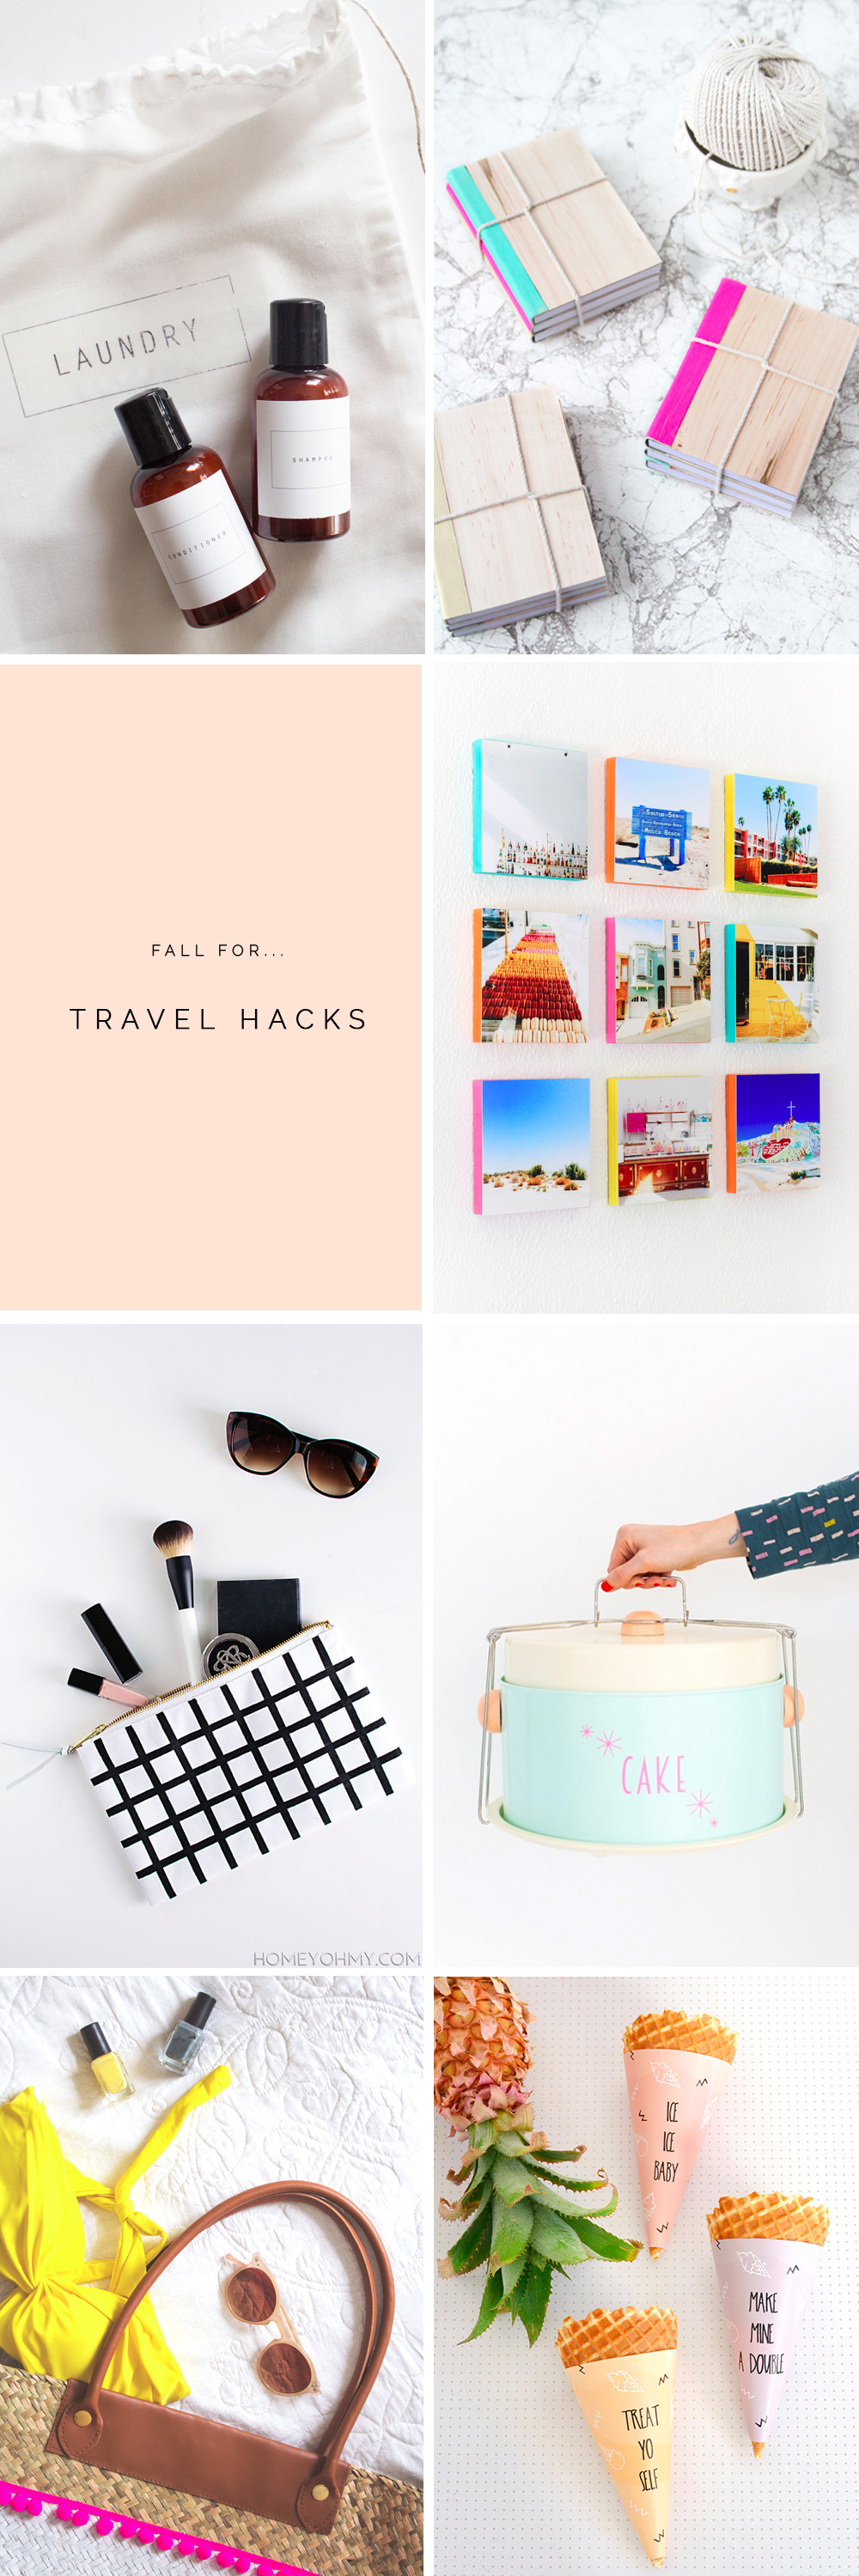 Fall For DIY Travel Hacks